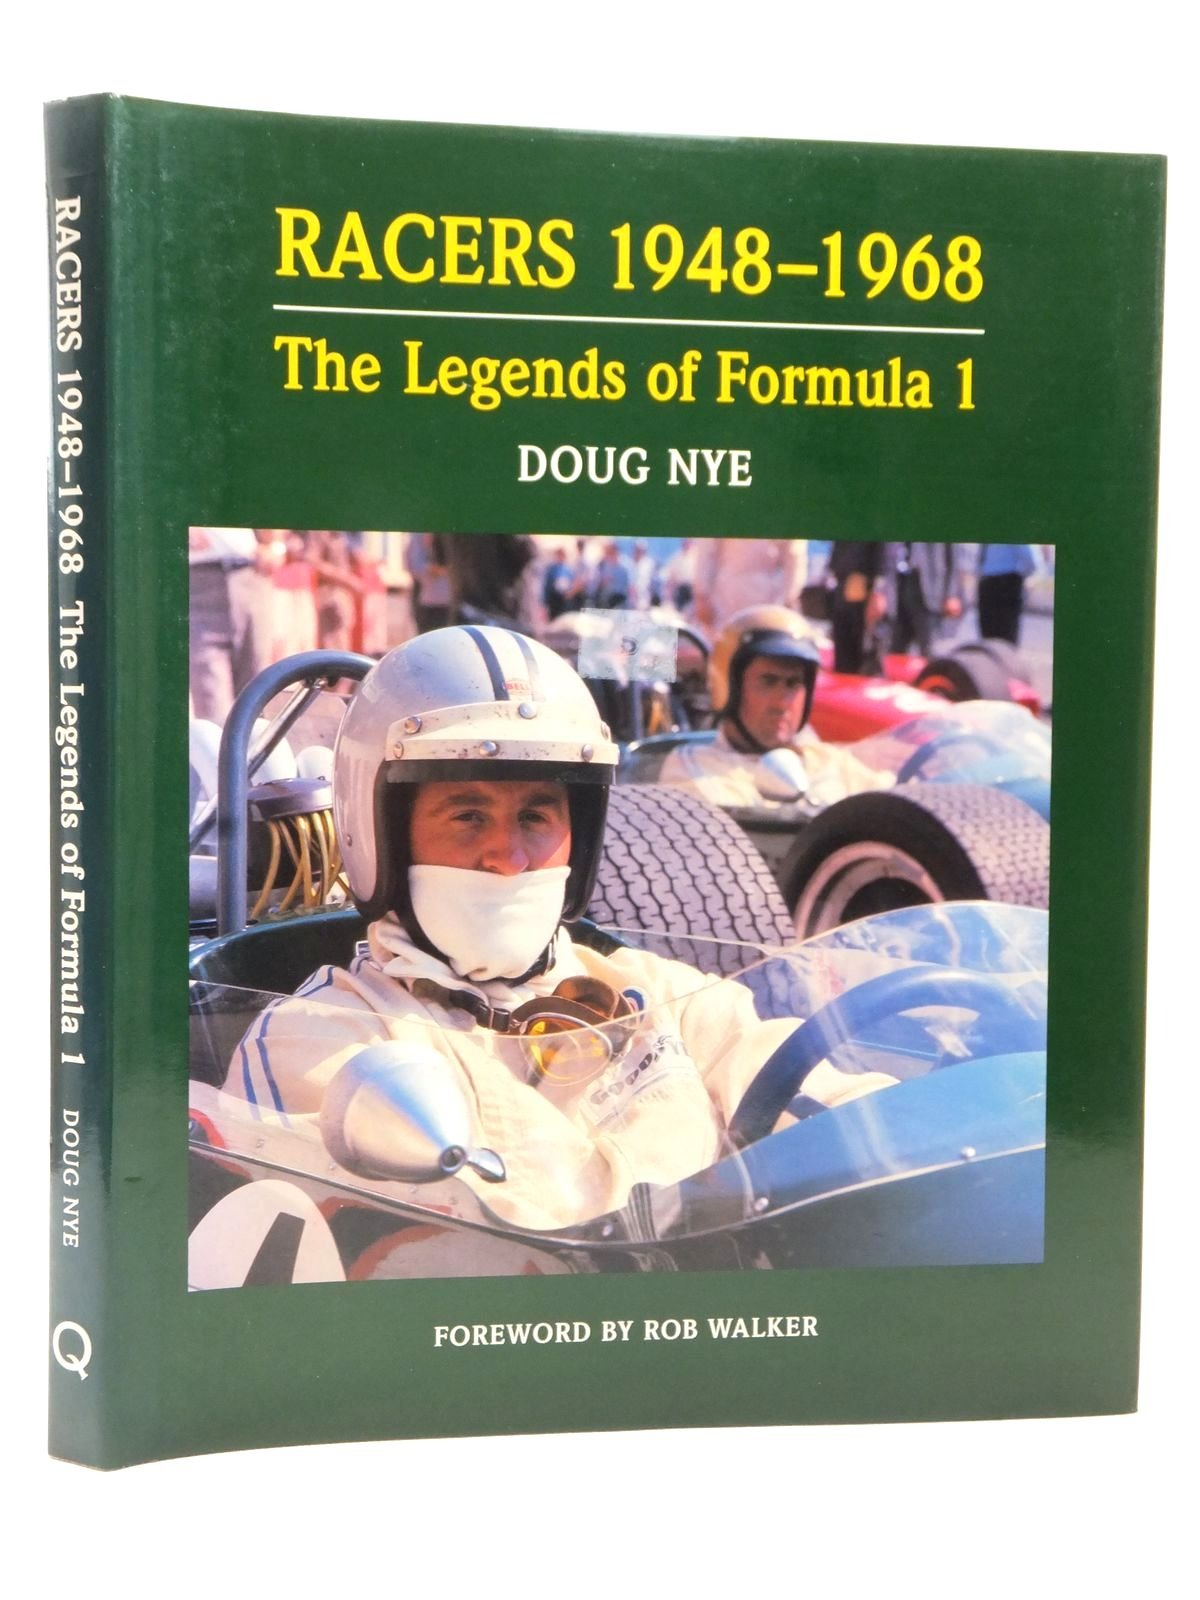 Photo of RACERS 1948-1968 THE LEGENDS OF FORMULA 1 written by Nye, Doug published by Queensgate Publications (STOCK CODE: 2122985)  for sale by Stella & Rose's Books